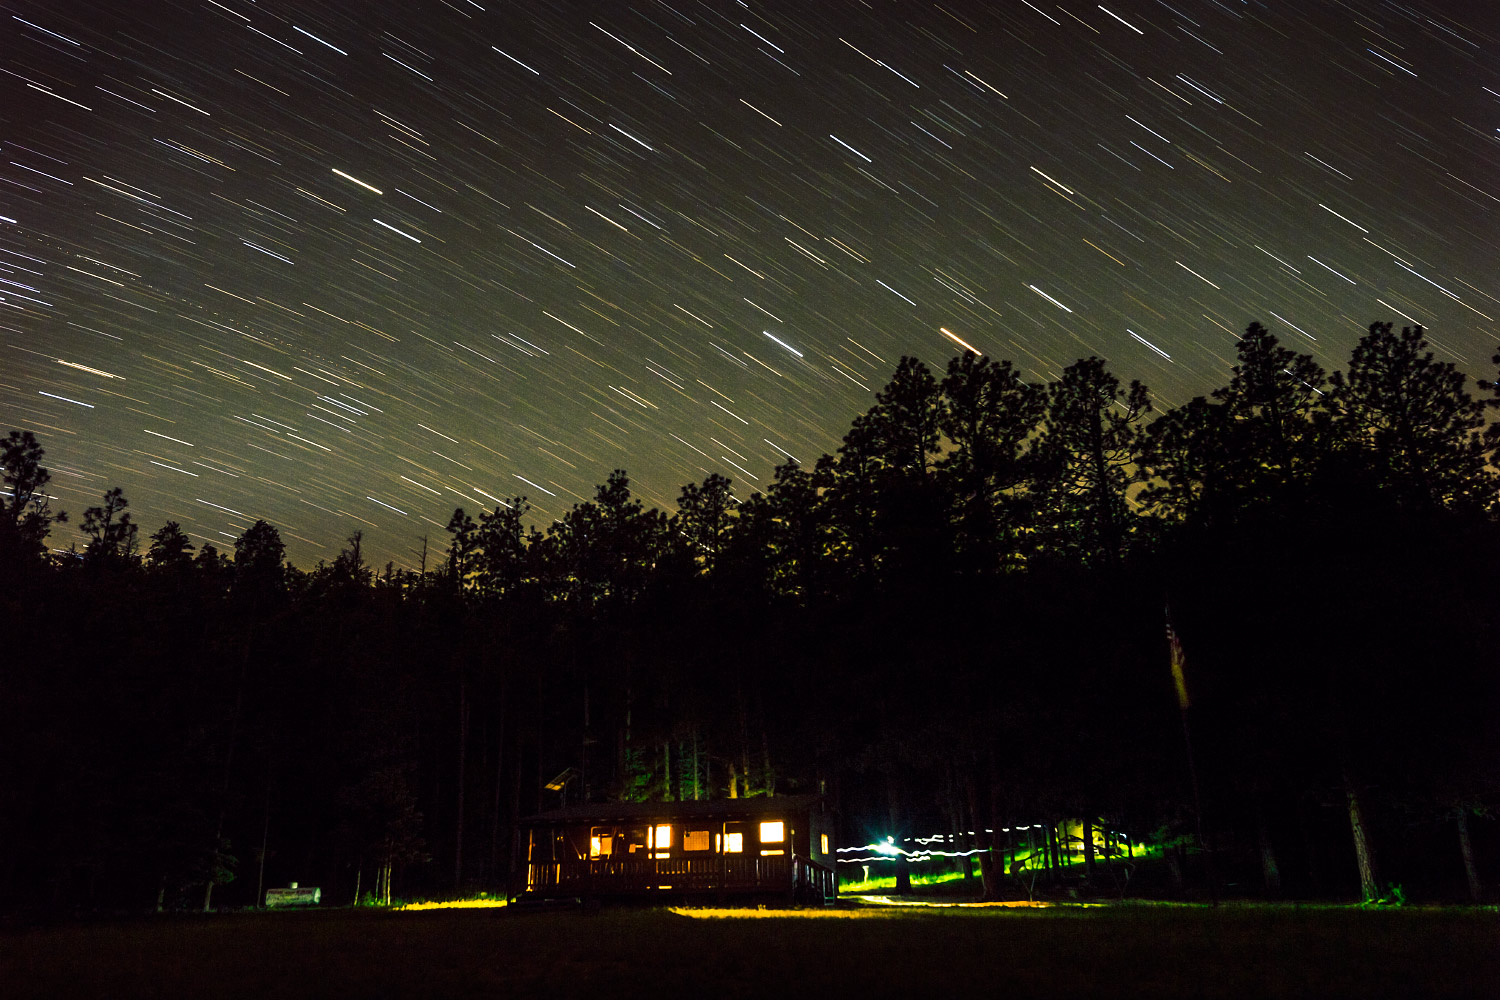 Urraca Cabin by star trail